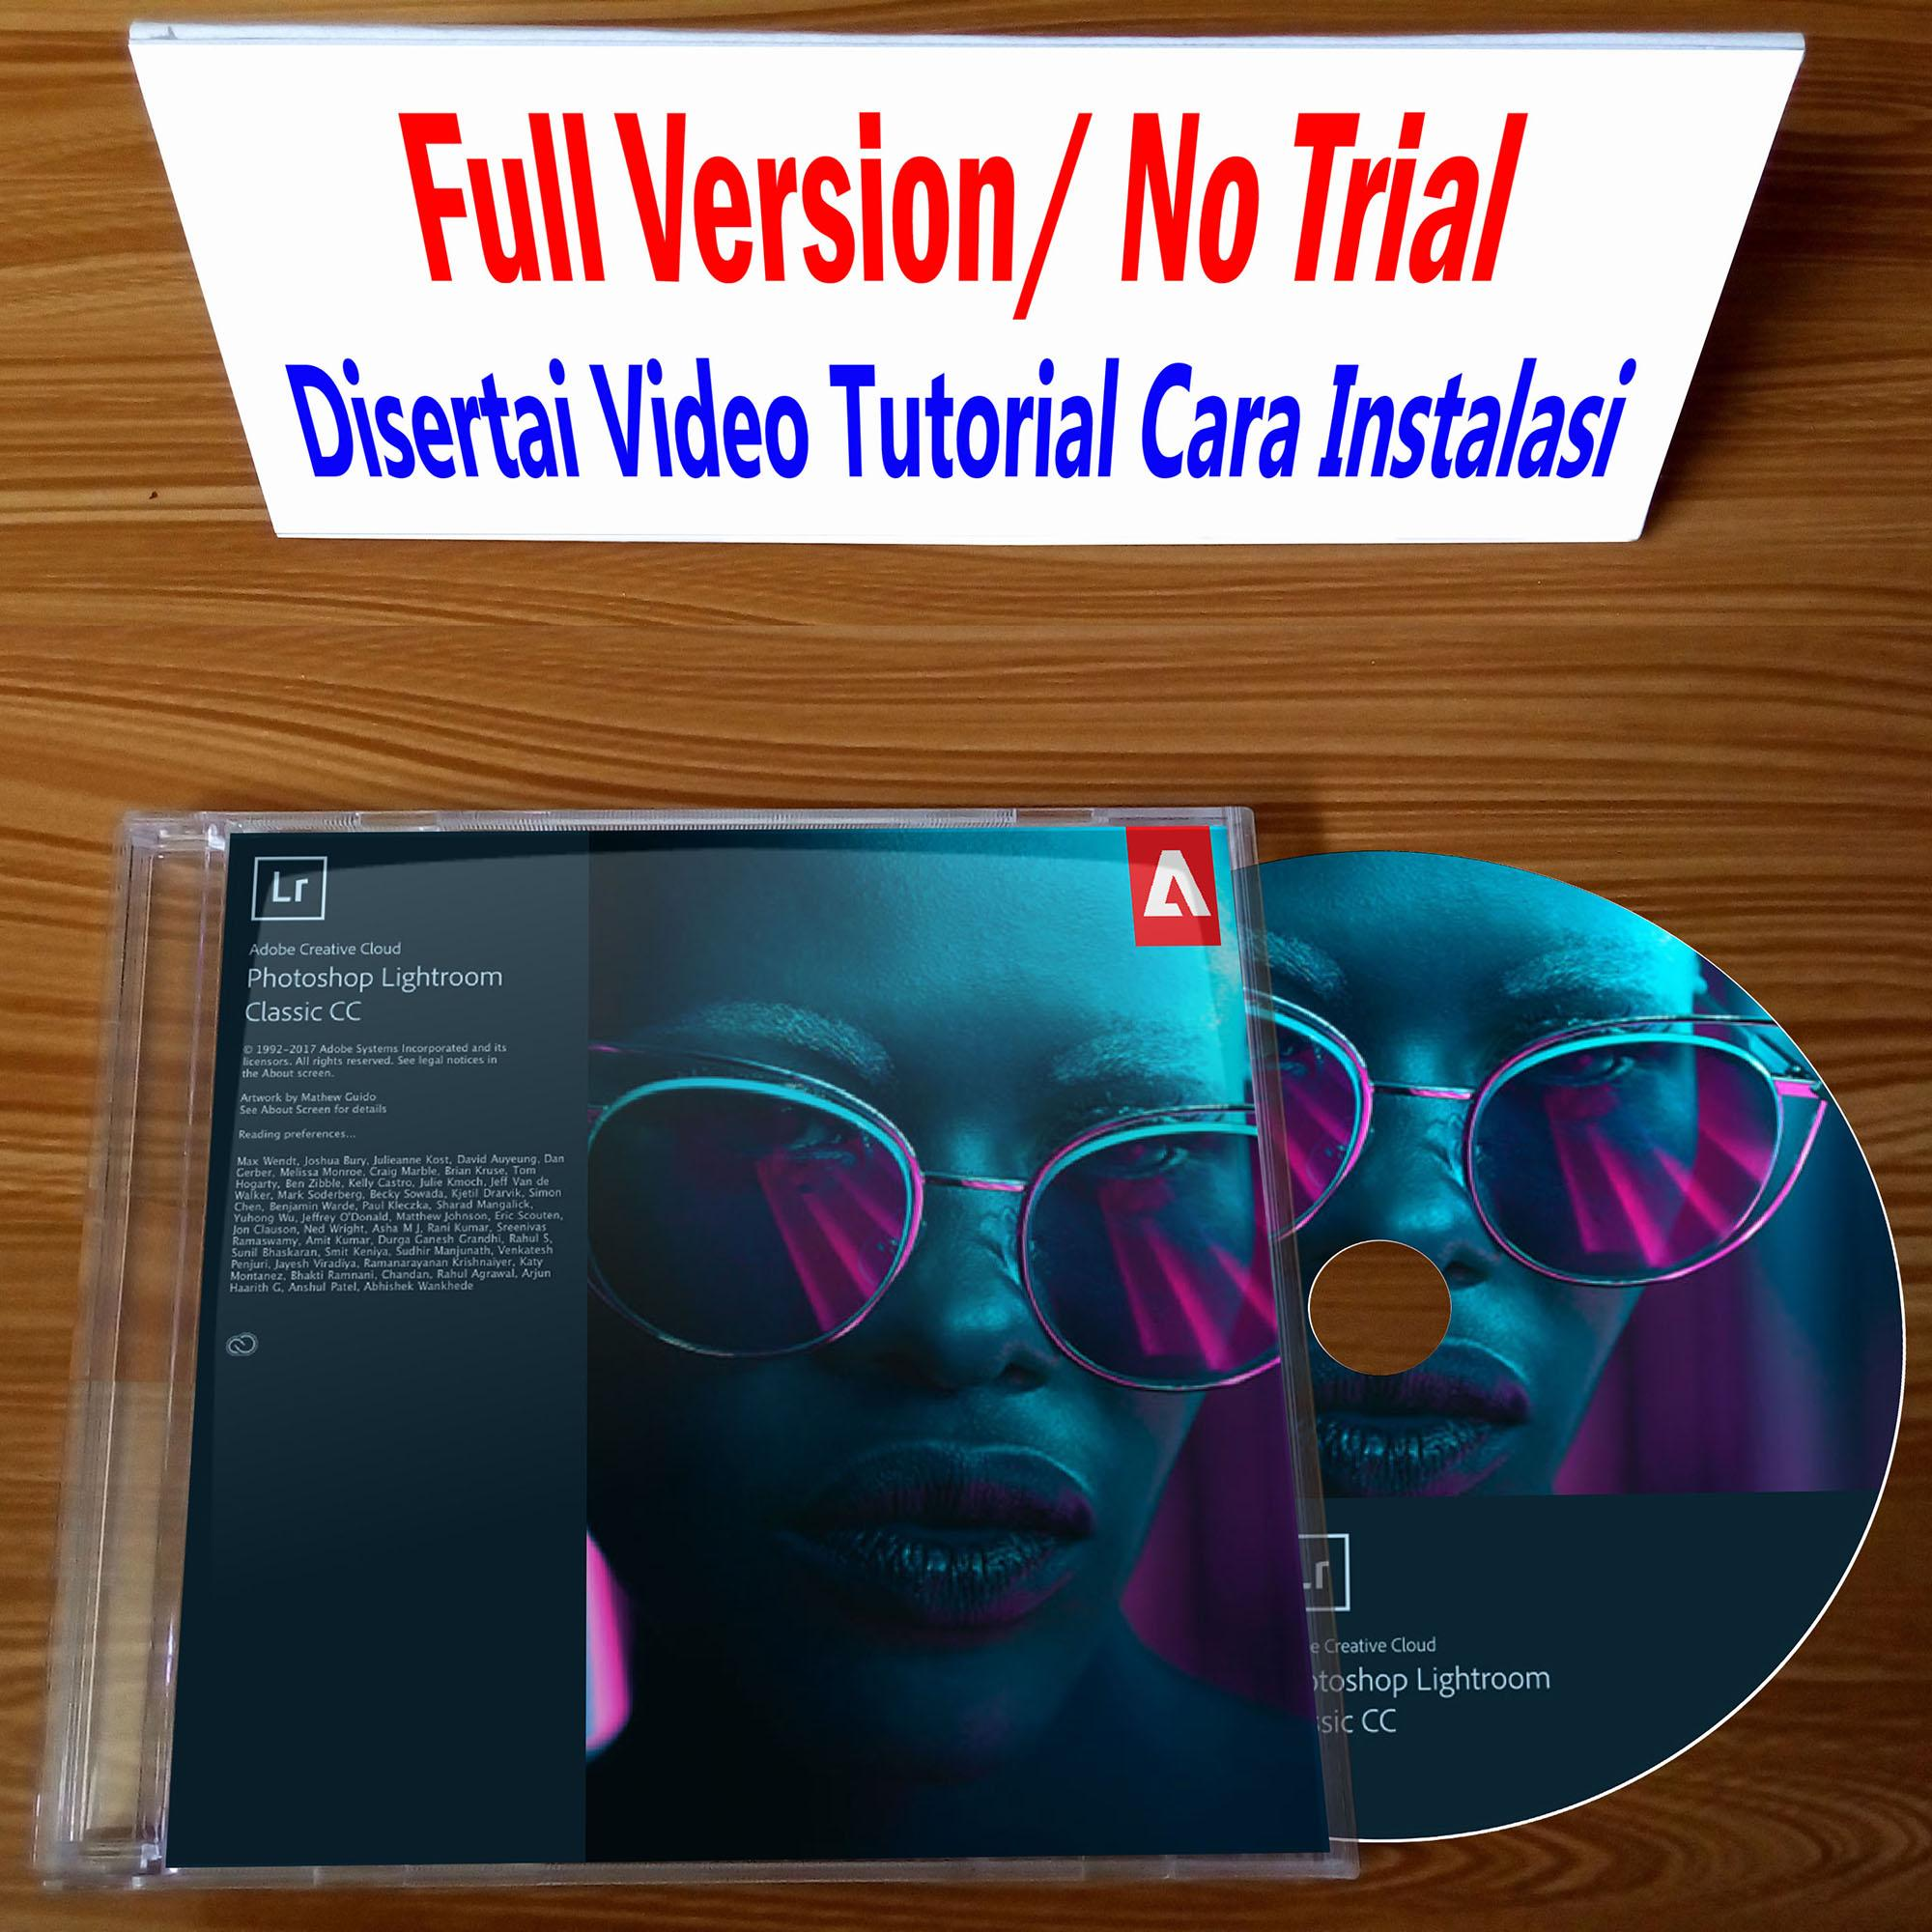 Buy Sell Cheapest Photoshop Com Editor Best Quality Product Deals Flashdisk 8 Gb Paket Software Design Adobe After Effect Audition Illustrator Premiere Pro Cc 2017 Lightroom 2018